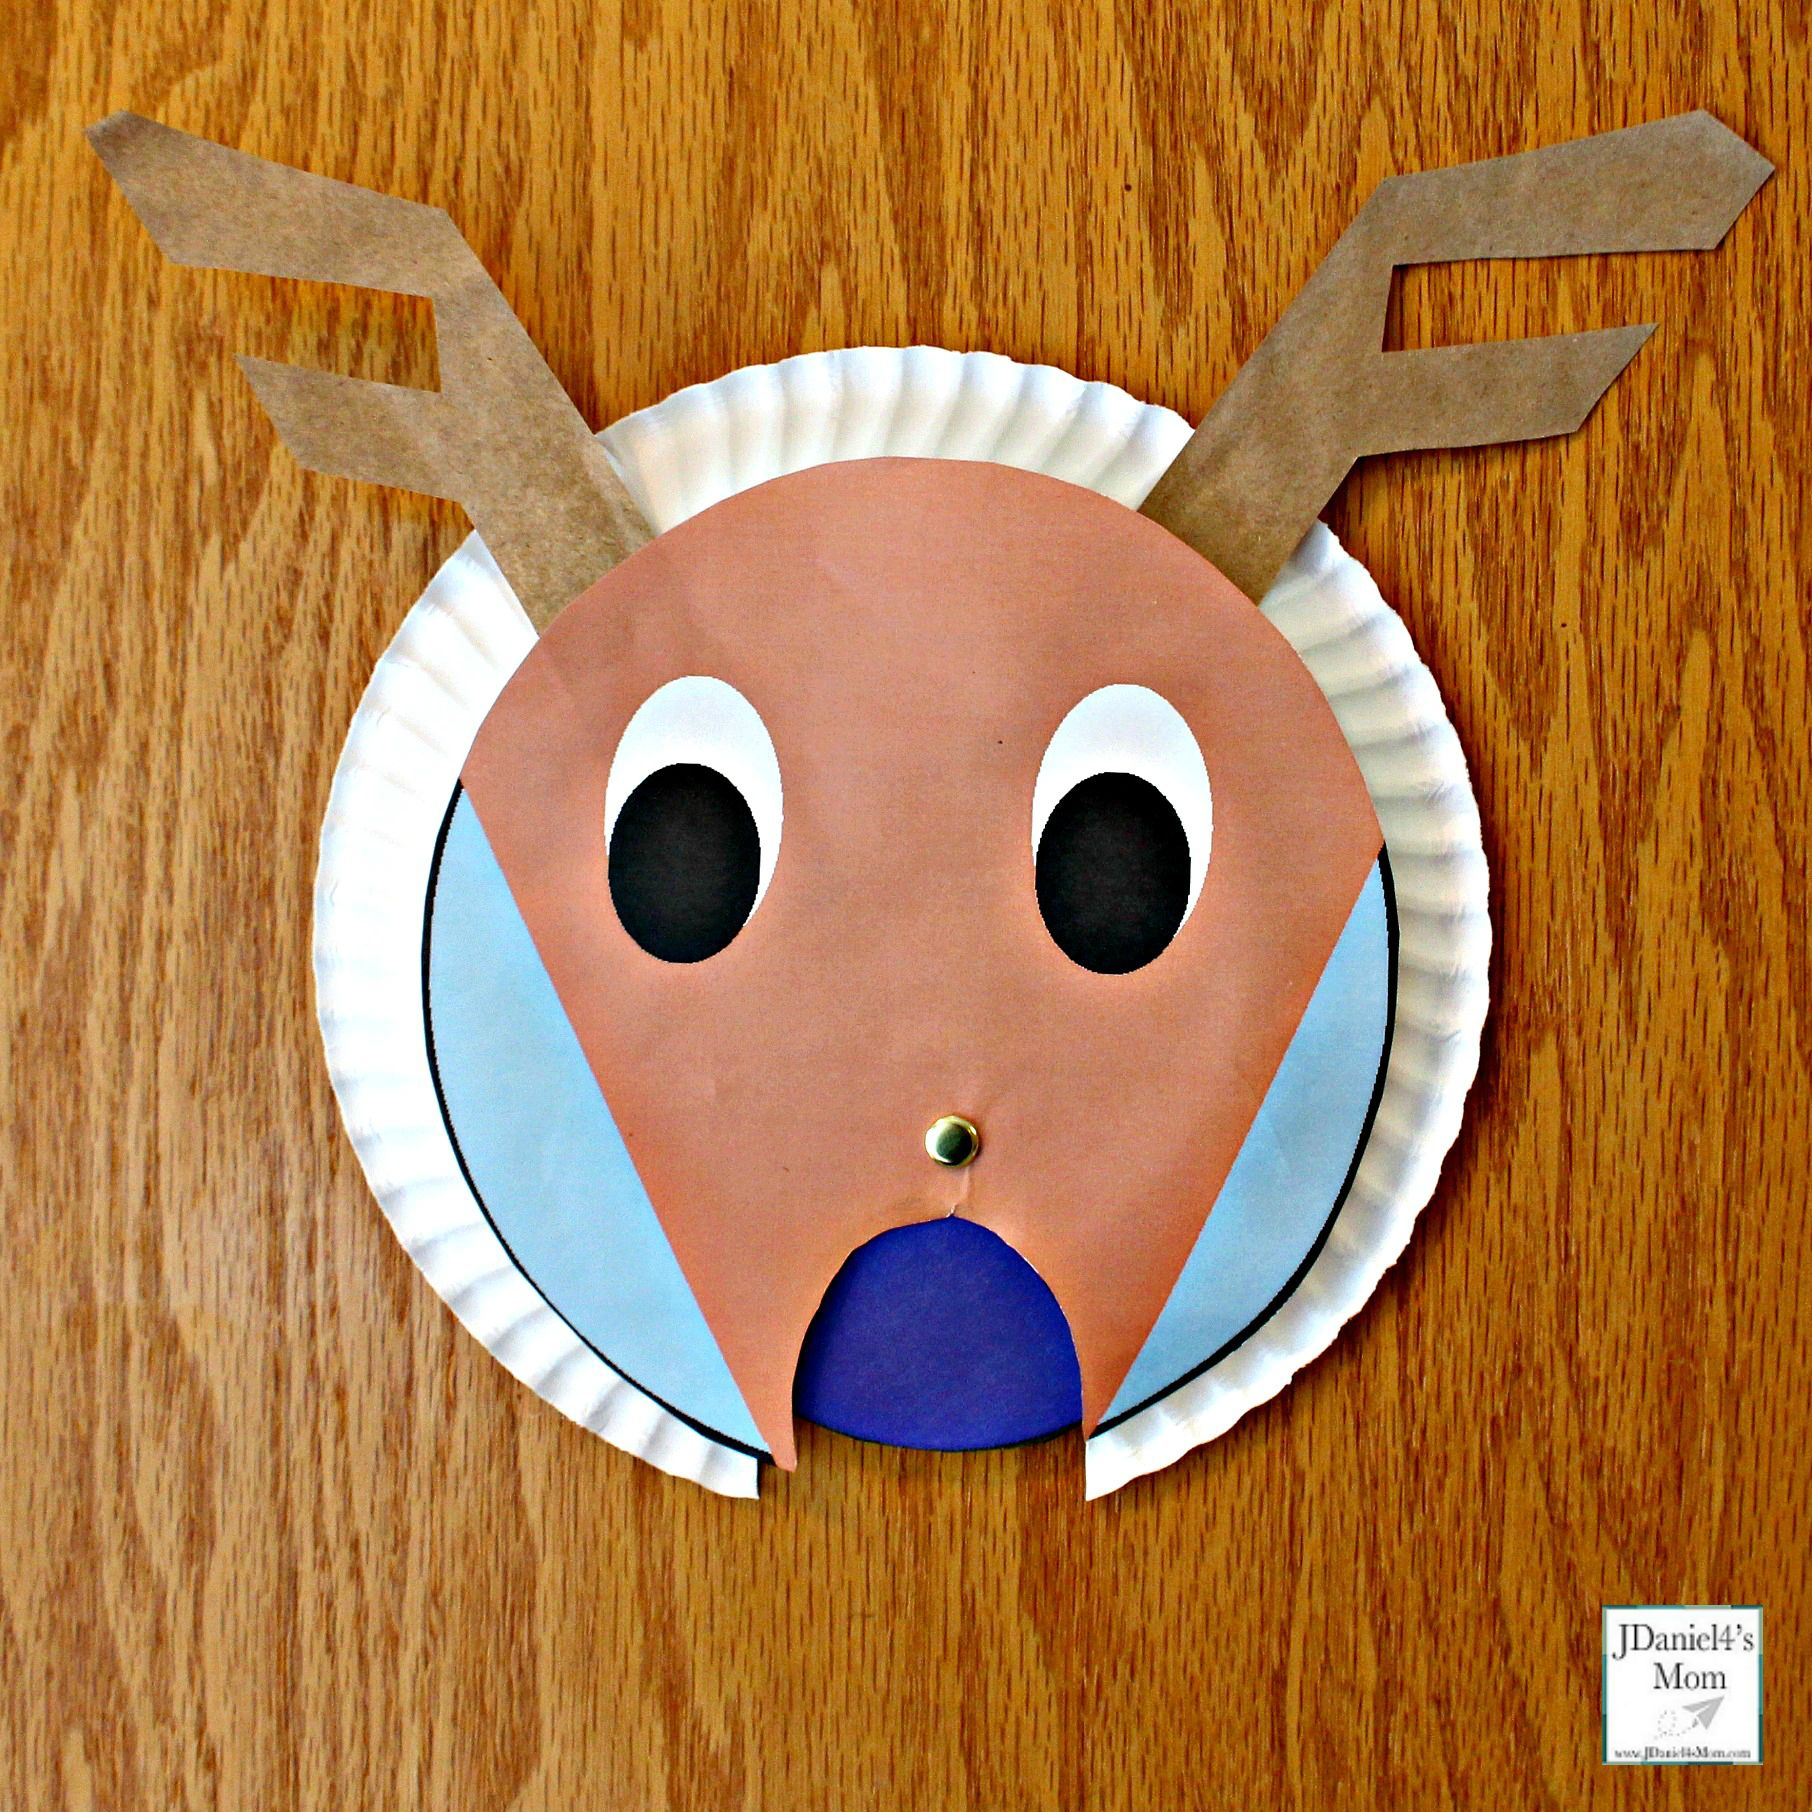 Changing The Color Of The Reindeer S Nose Color Activity